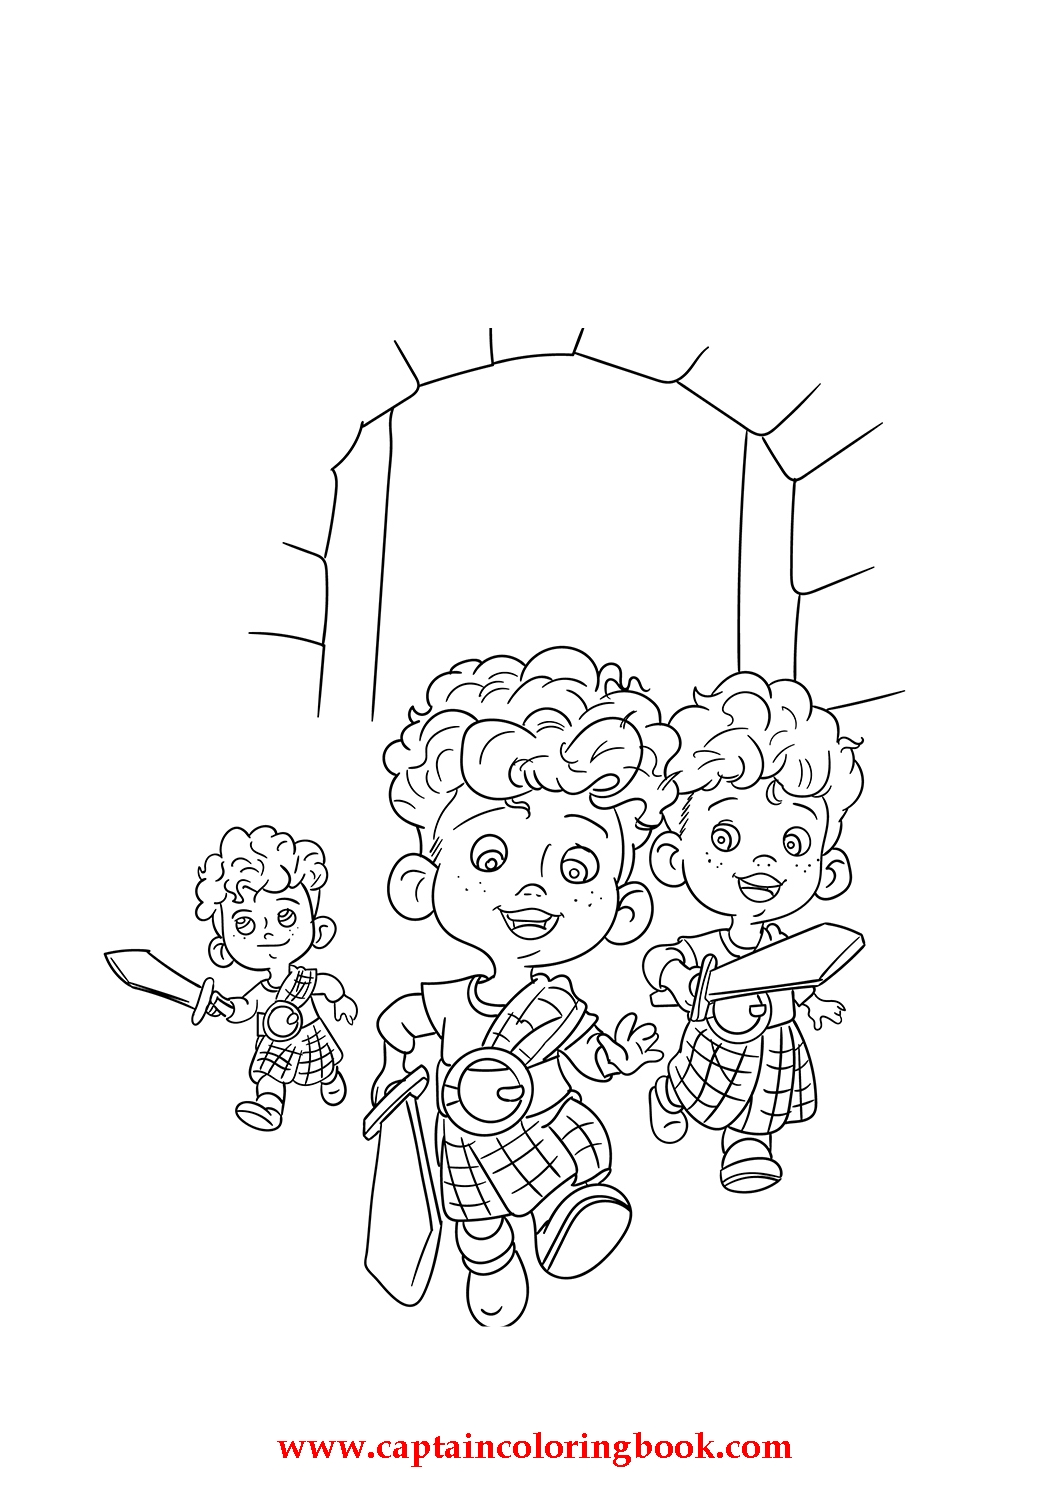 Disney Brave Coloring Pages - Coloring Page